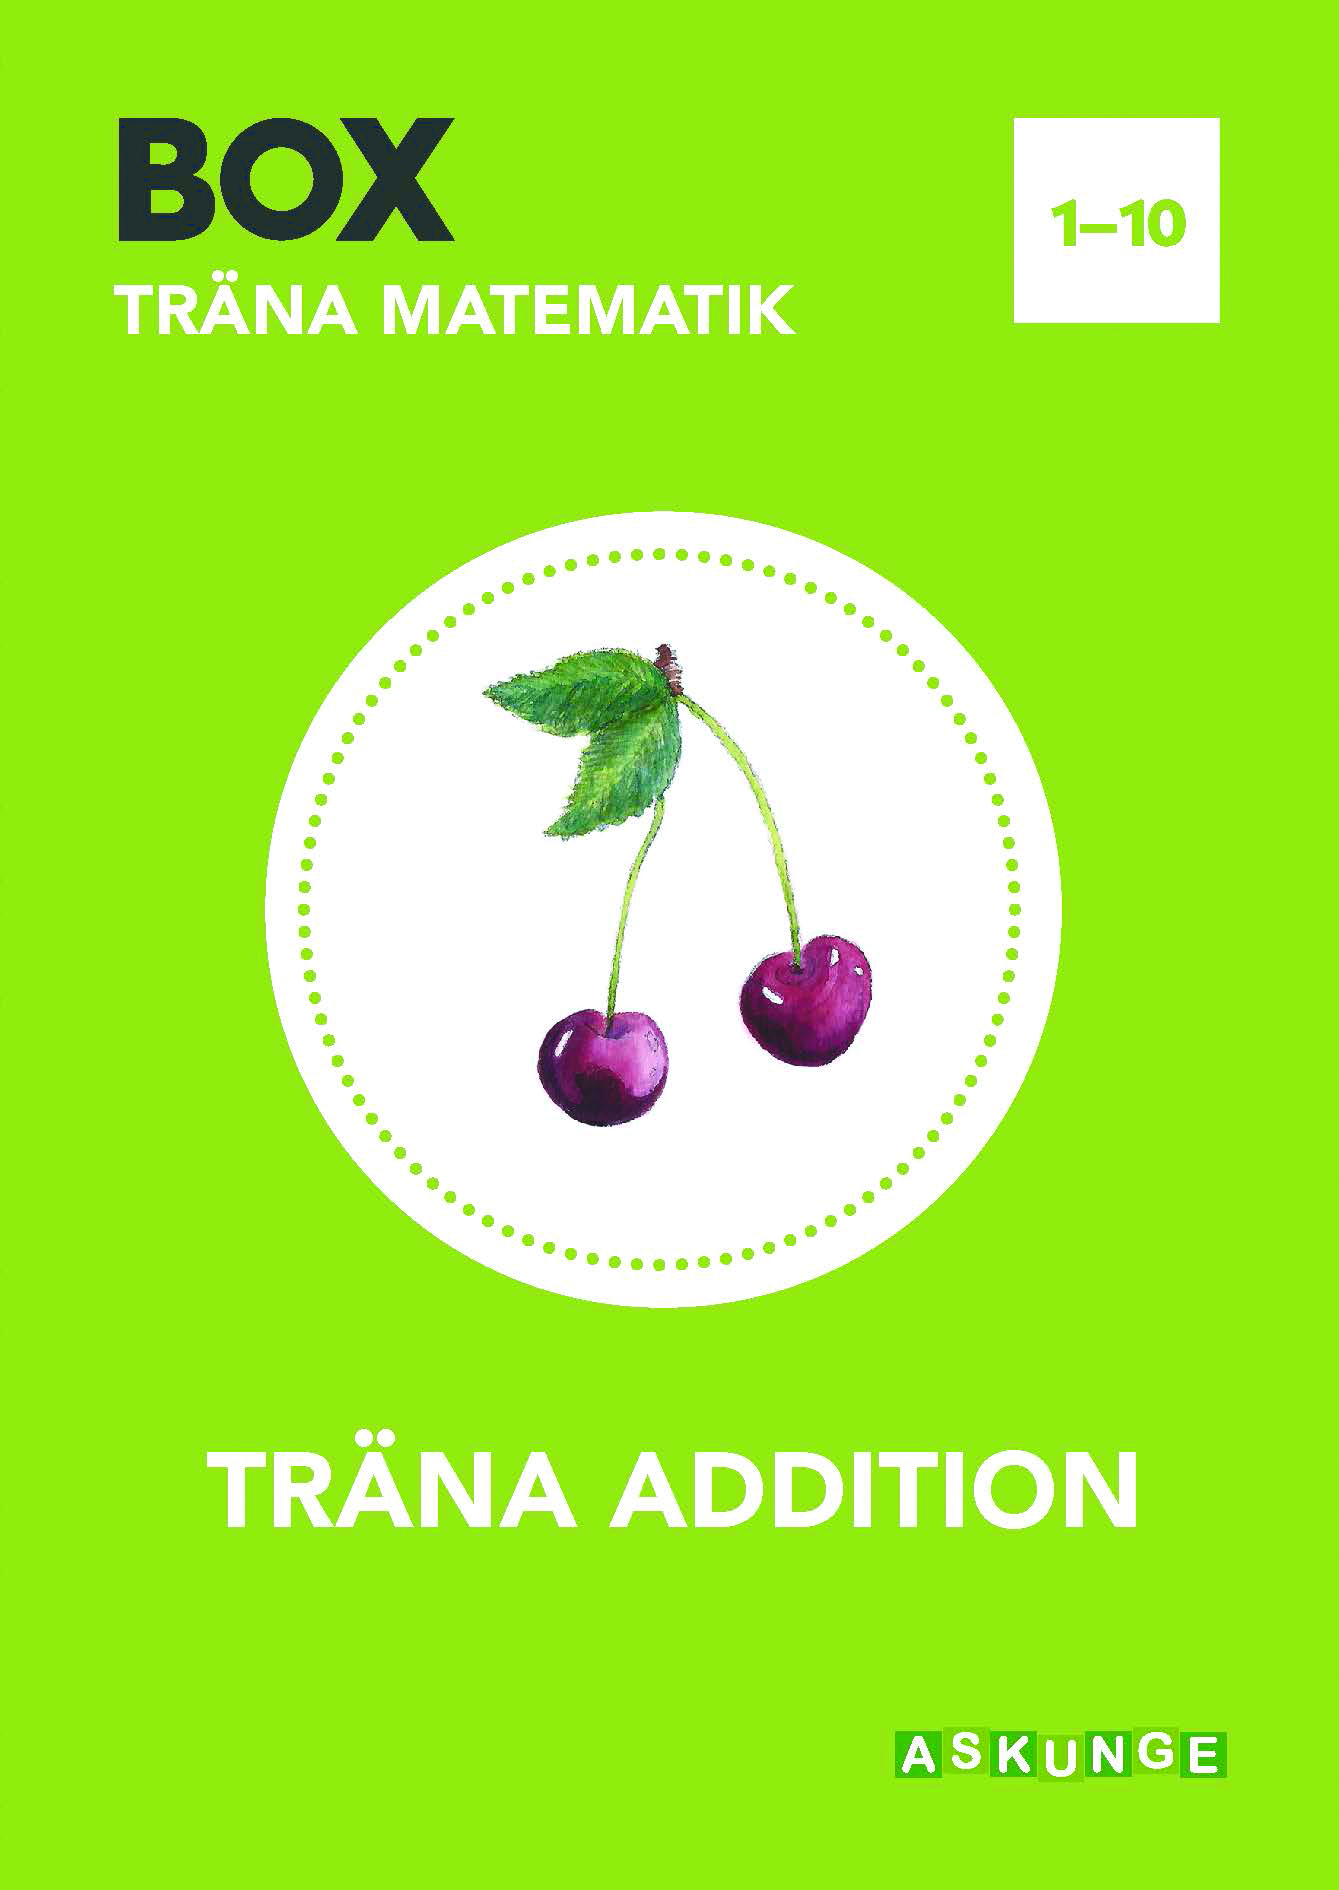 BOX Träna addition 1-10